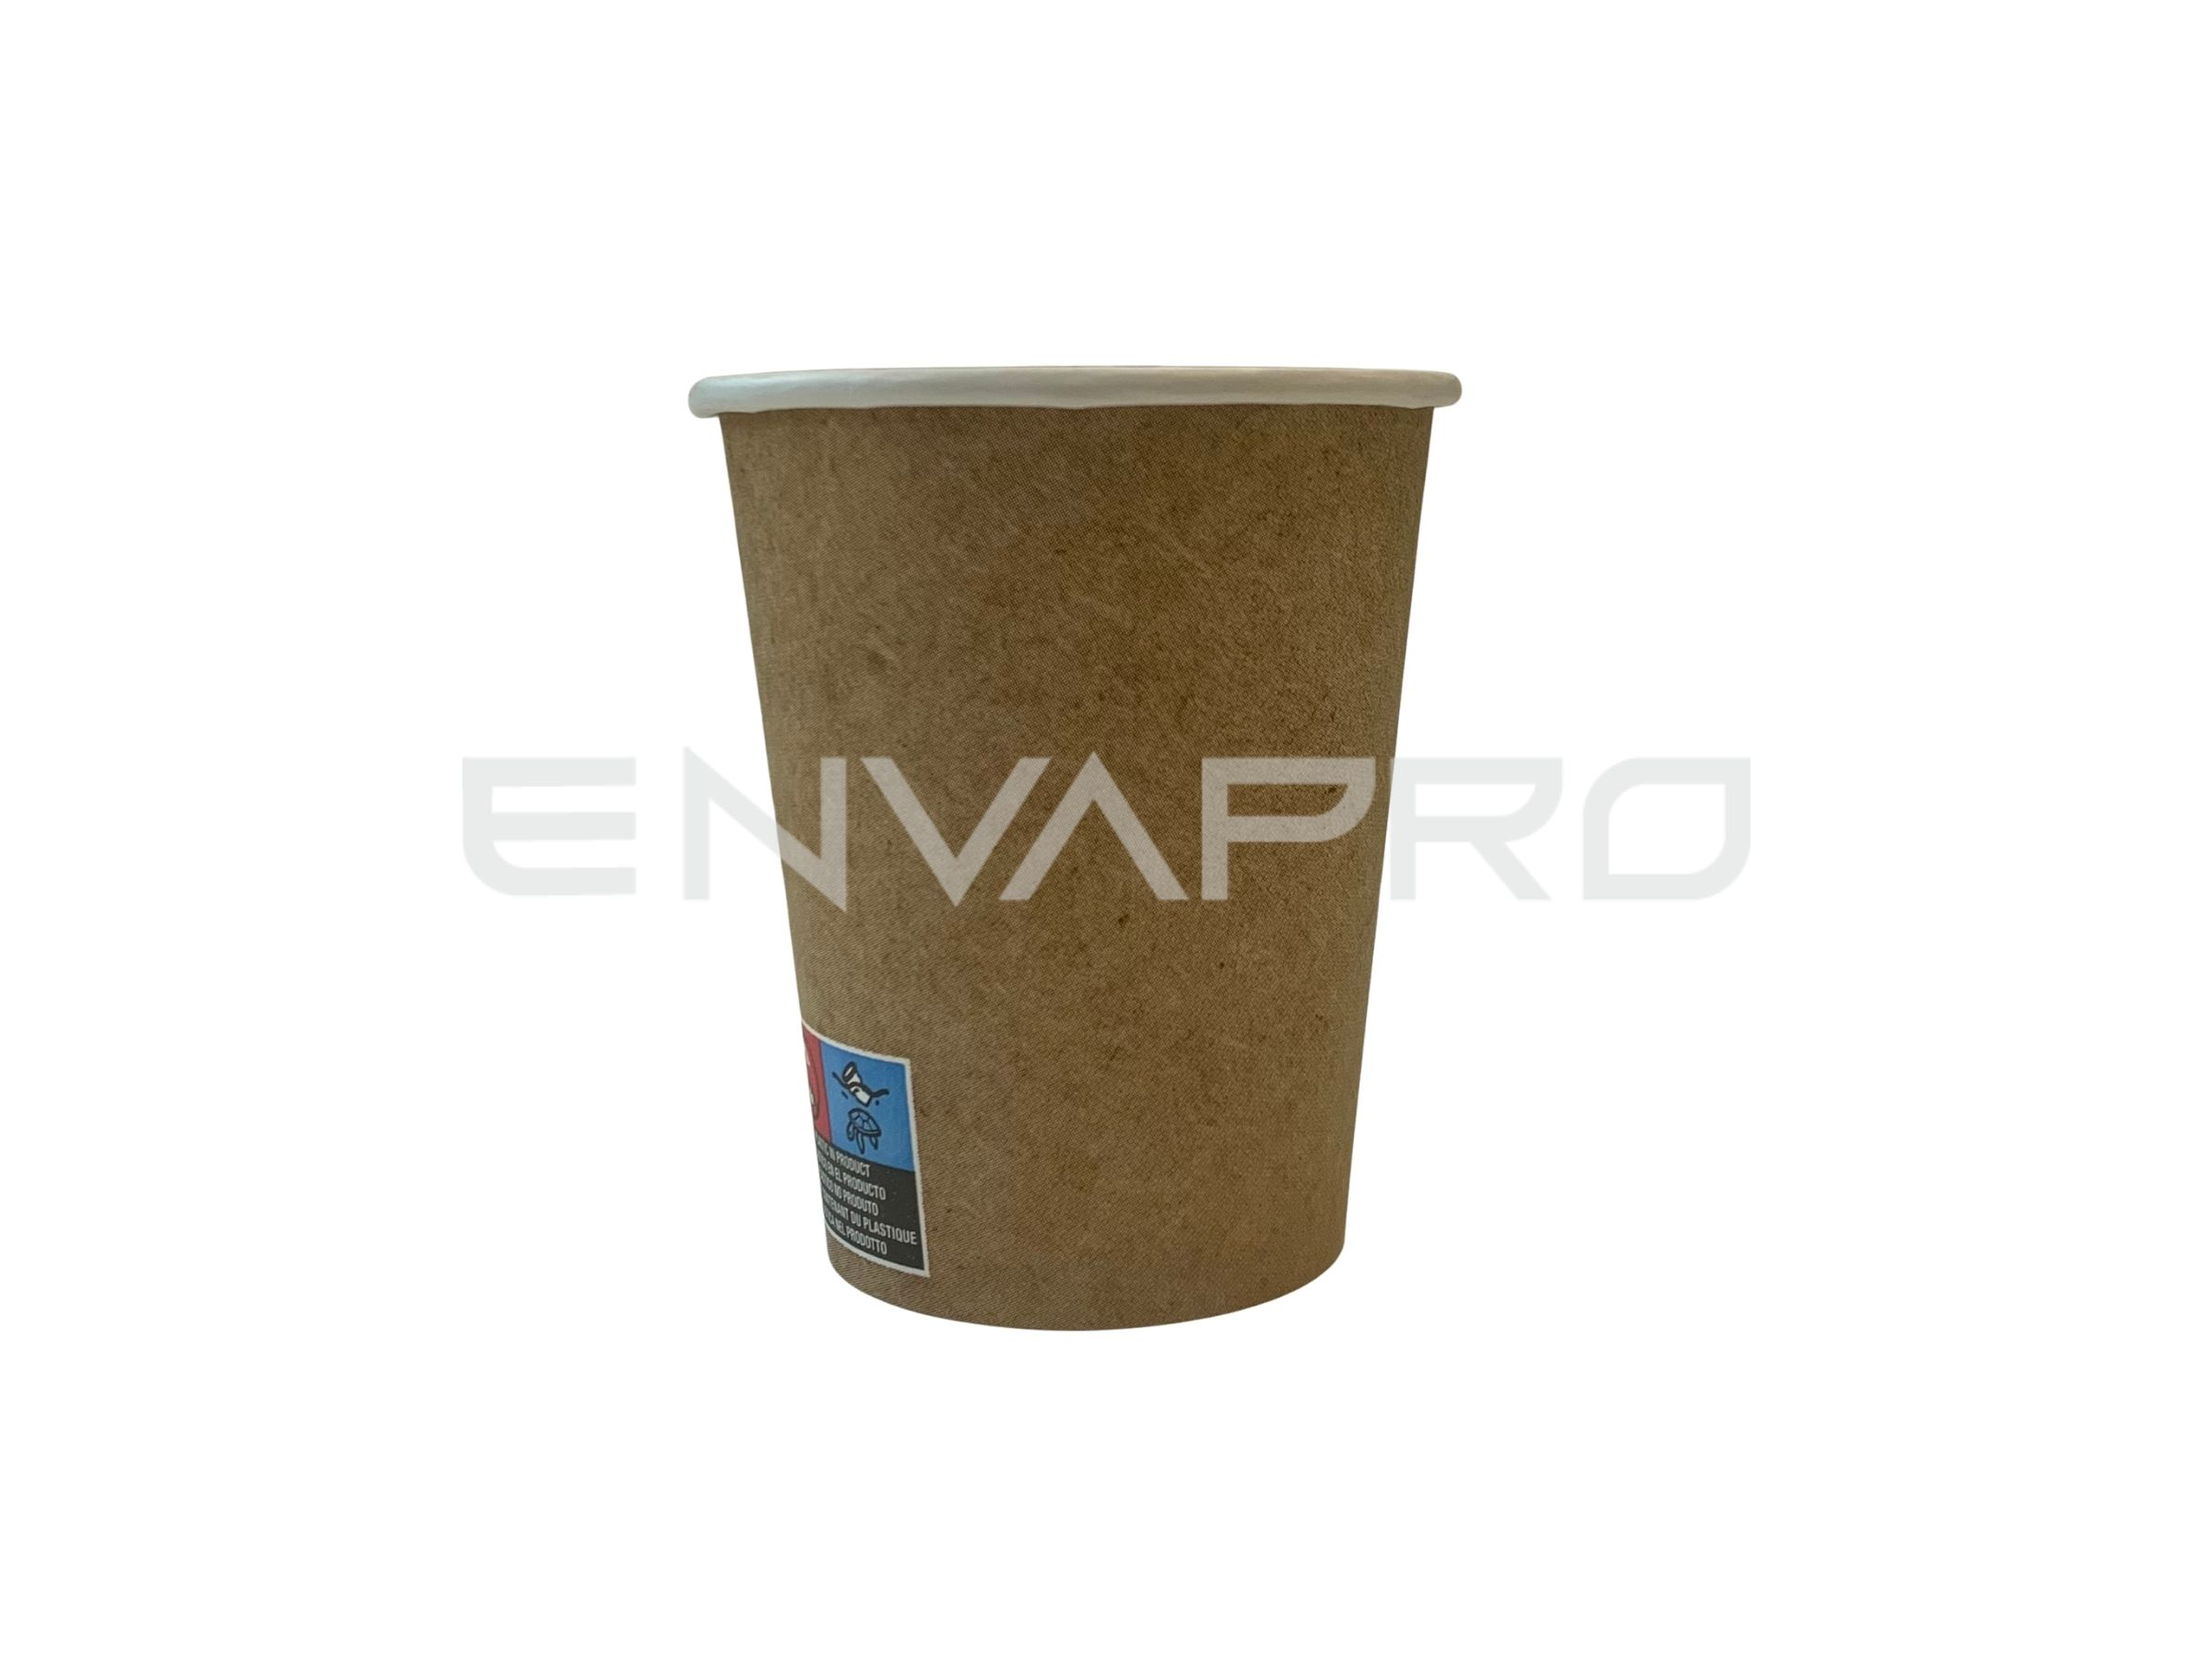 VASO CARTÓN PARED GRUESA EFECTO KRAFT 8oz 237ml